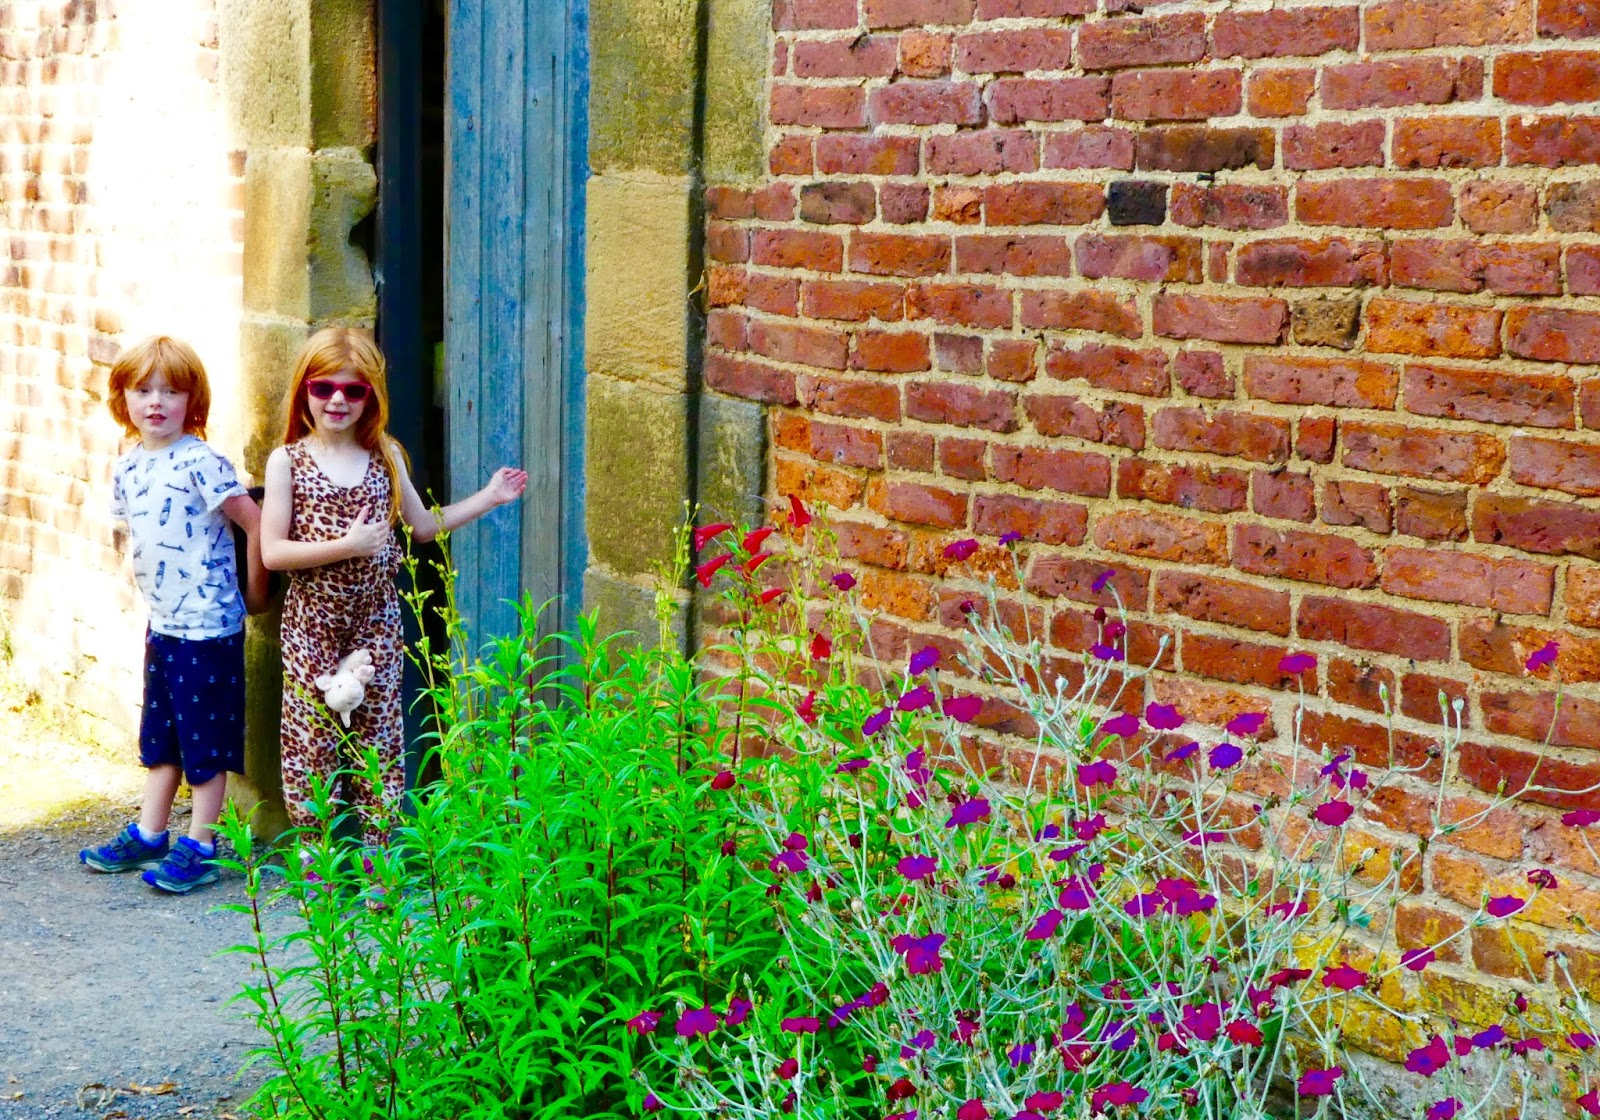 Gibside - A North East National Trust Property that's ideal for Picnics, Adventure Playground fun and beautiful gardens - walled garden entrance